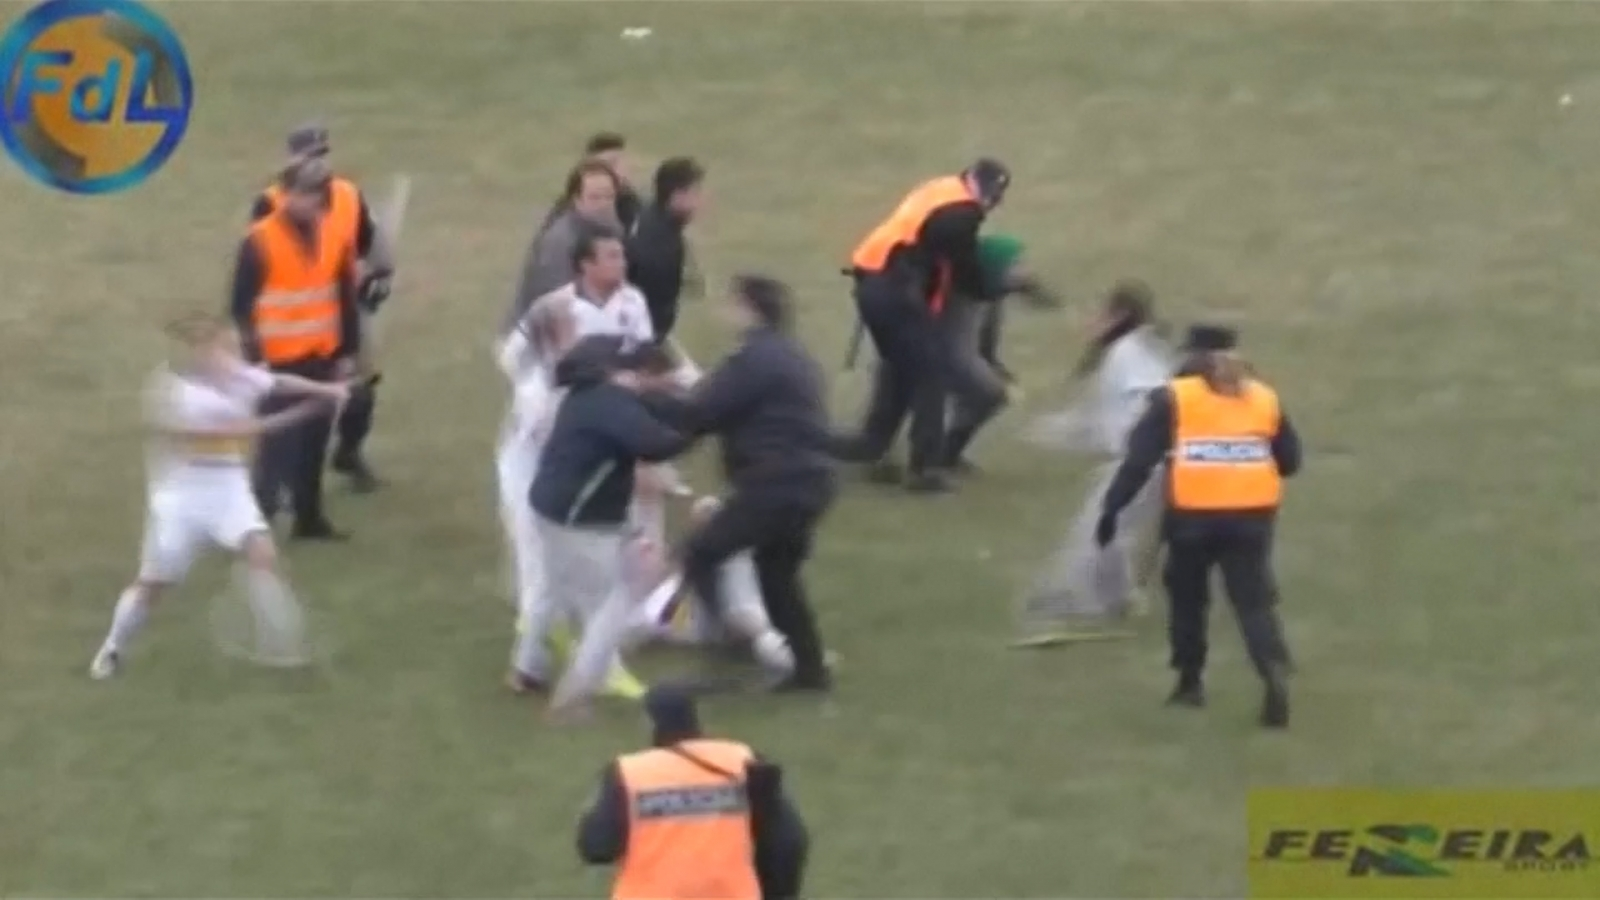 Argentina football match turns into brawl